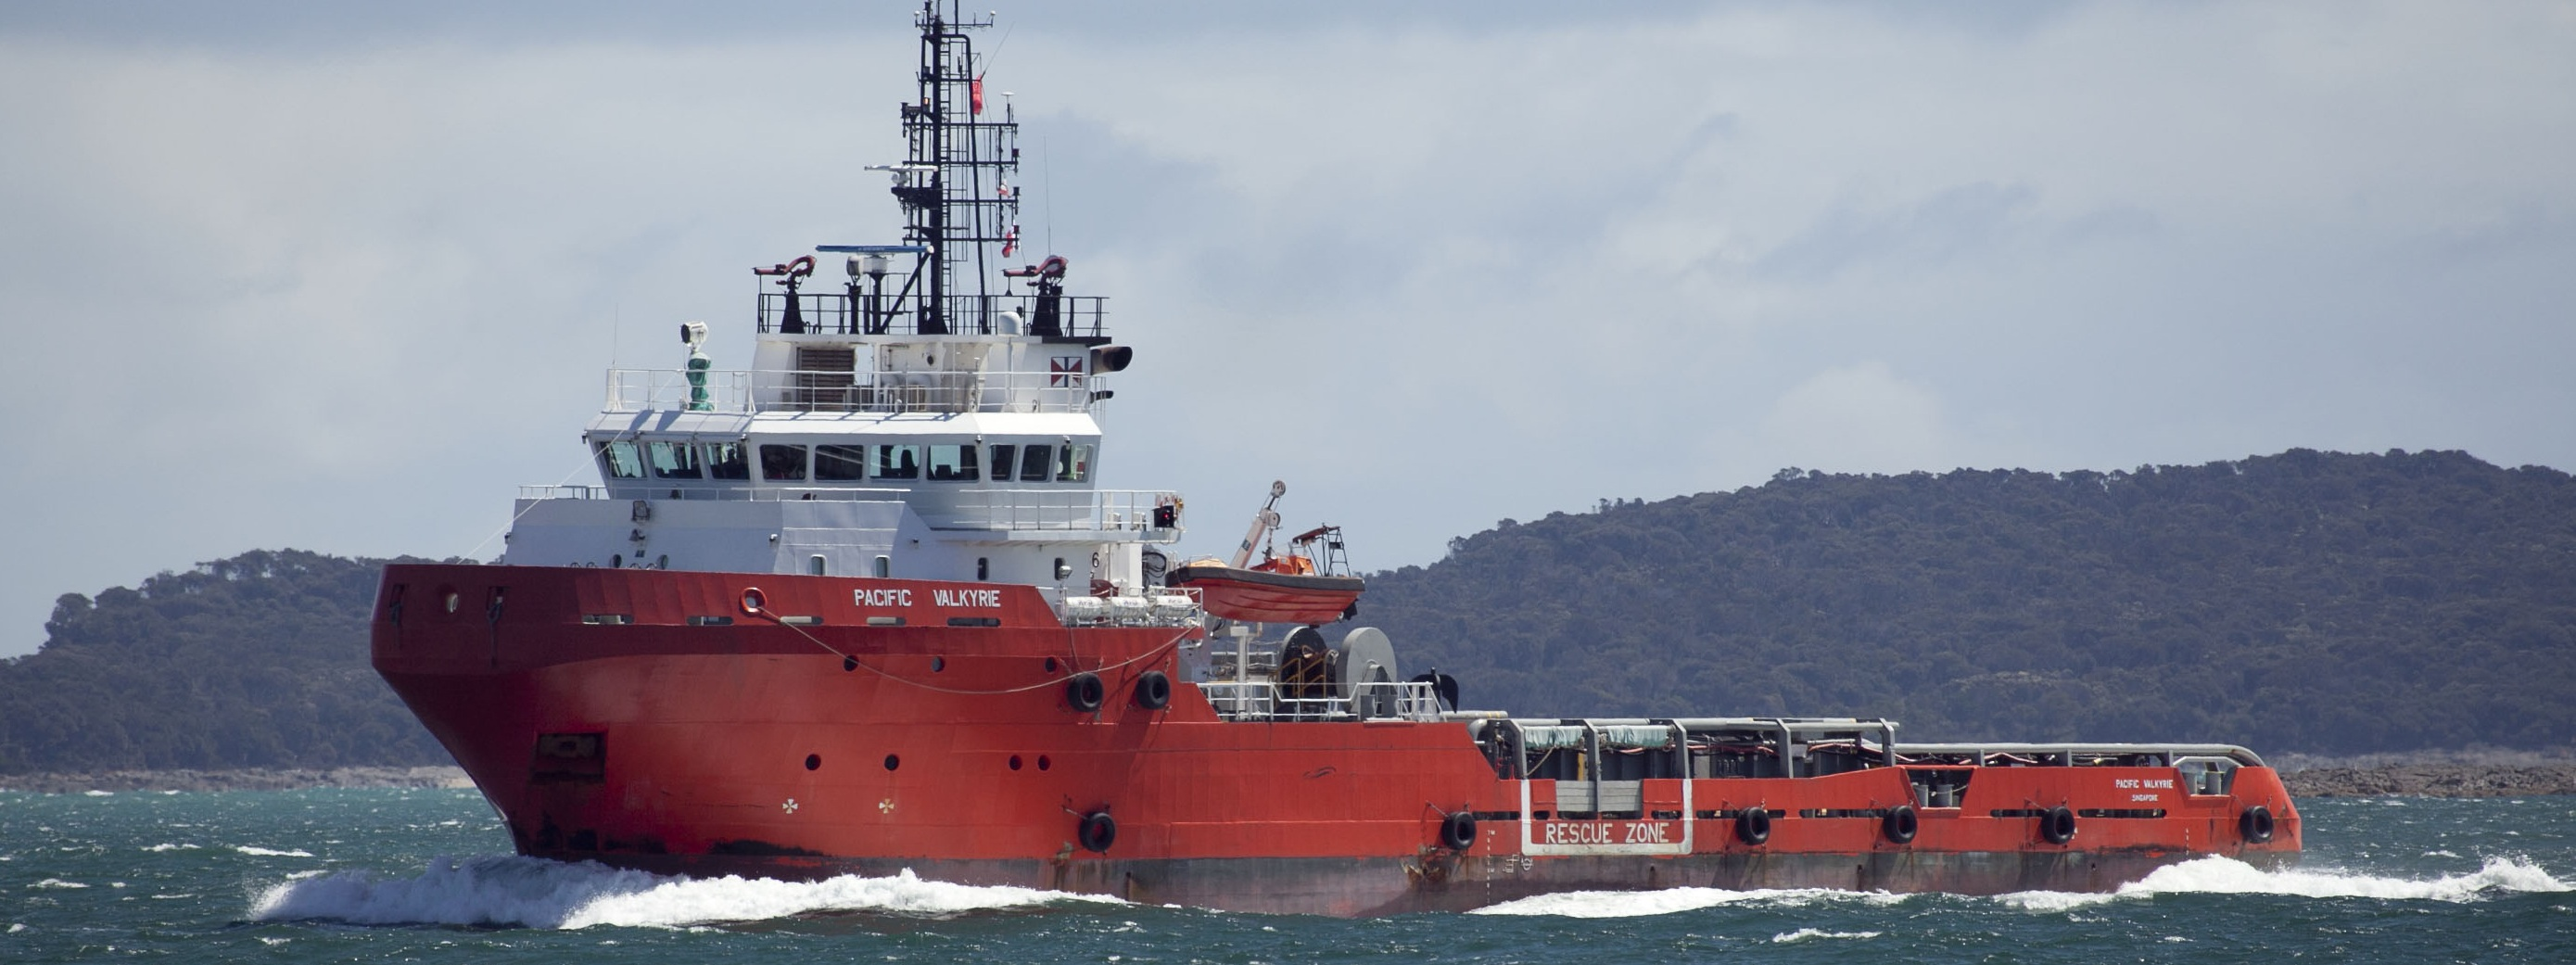 66.0 metres Length  Anchor Handling Tug Supply Vessels